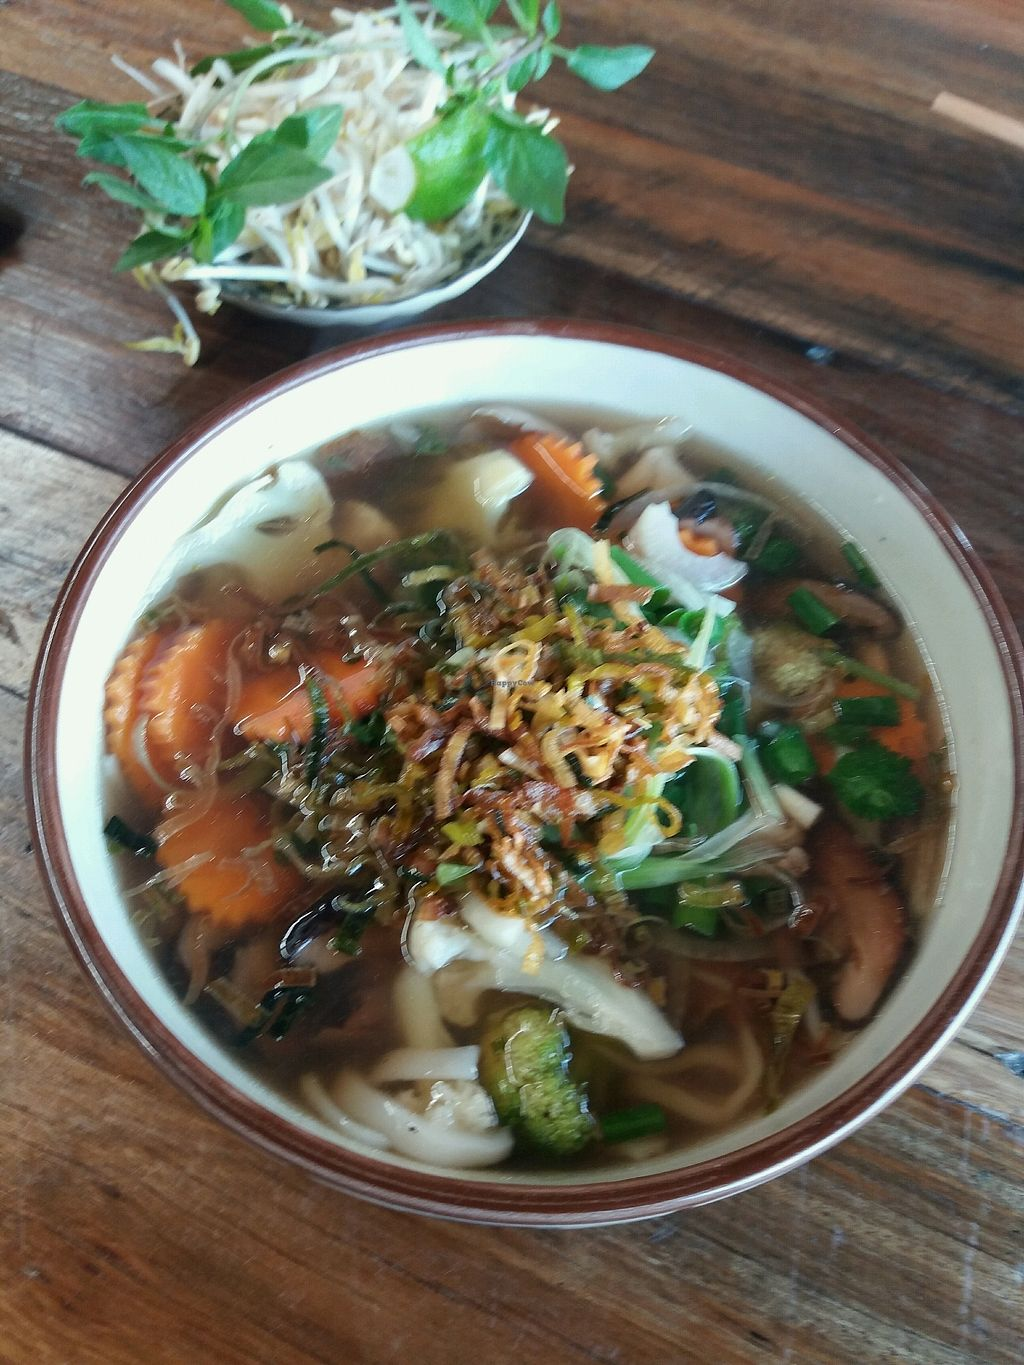 """Photo of Hello Auntie  by <a href=""""/members/profile/veganvirtues"""">veganvirtues</a> <br/>vegan pho <br/> December 28, 2017  - <a href='/contact/abuse/image/85983/339816'>Report</a>"""